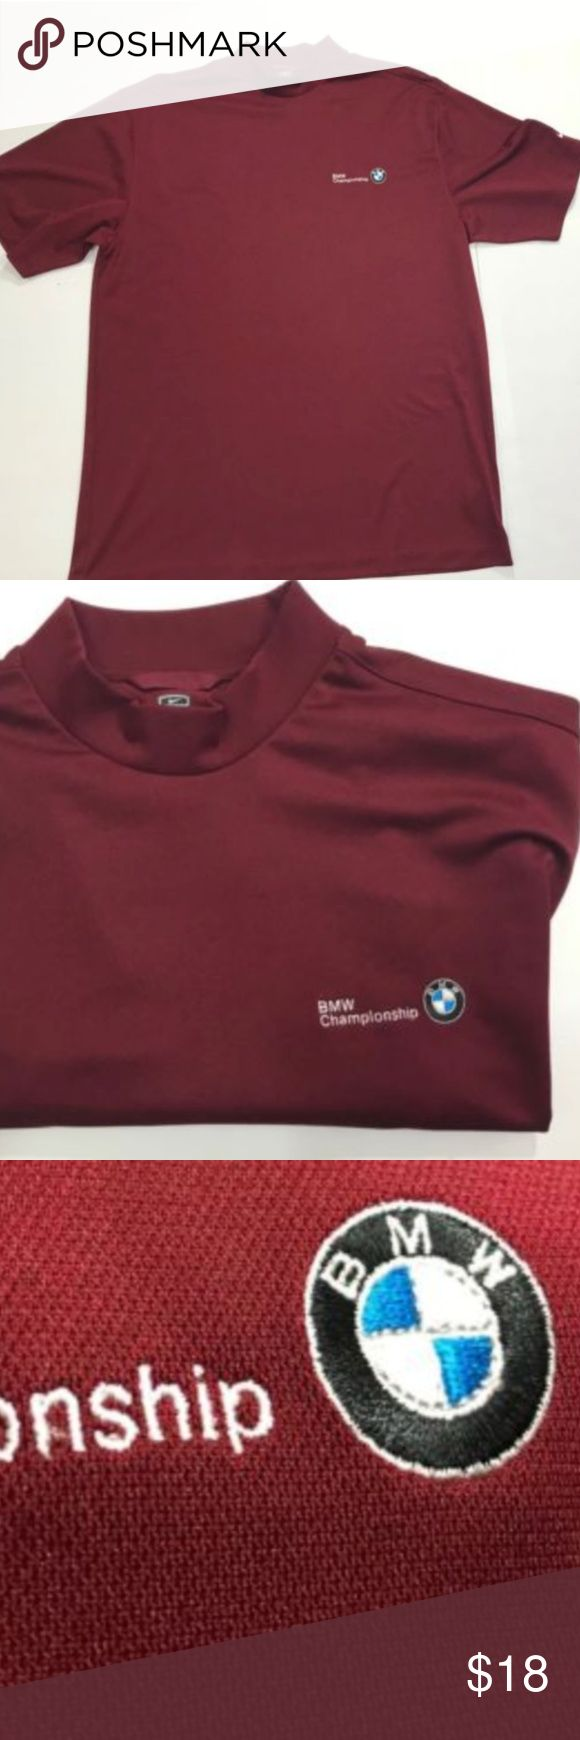 Nike Golf MAROON CREW NECK POLYESTER BMW XL Nike Golf MAROON CREW NECK POLYESTER BMW CHAMPIONSHIP SHORT SLEEVE SHIRT   SIZE XL  PRE-OWNED   PLEASE SEE PICTURES FOR FULL DETAILS  SHIPS FAST AND SAFE! nike Shirts Tees - Long Sleeve